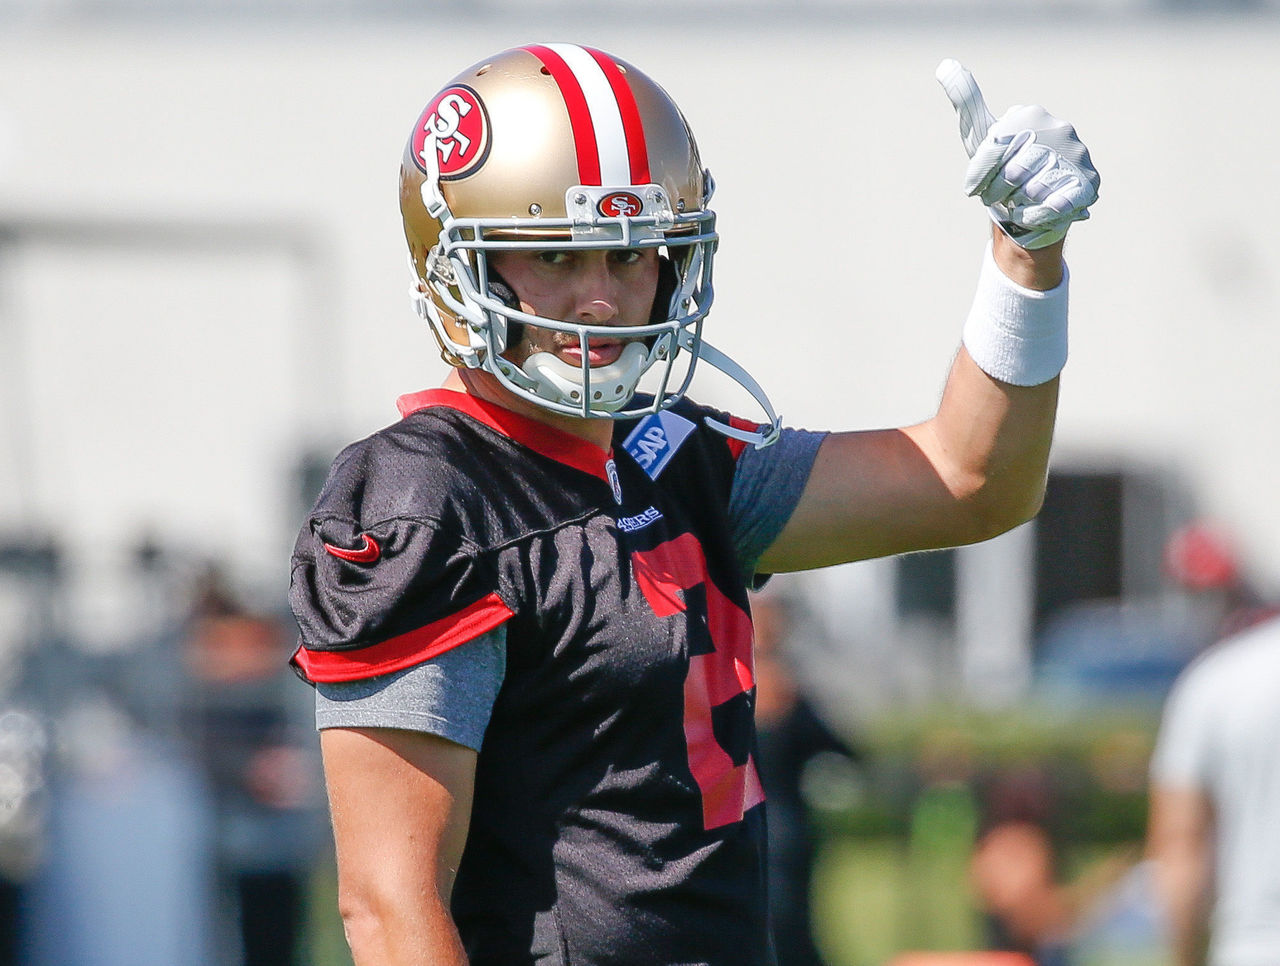 Cropped 2017 07 28t200850z 1715209616 nocid rtrmadp 3 nfl san francisco 49ers training camp